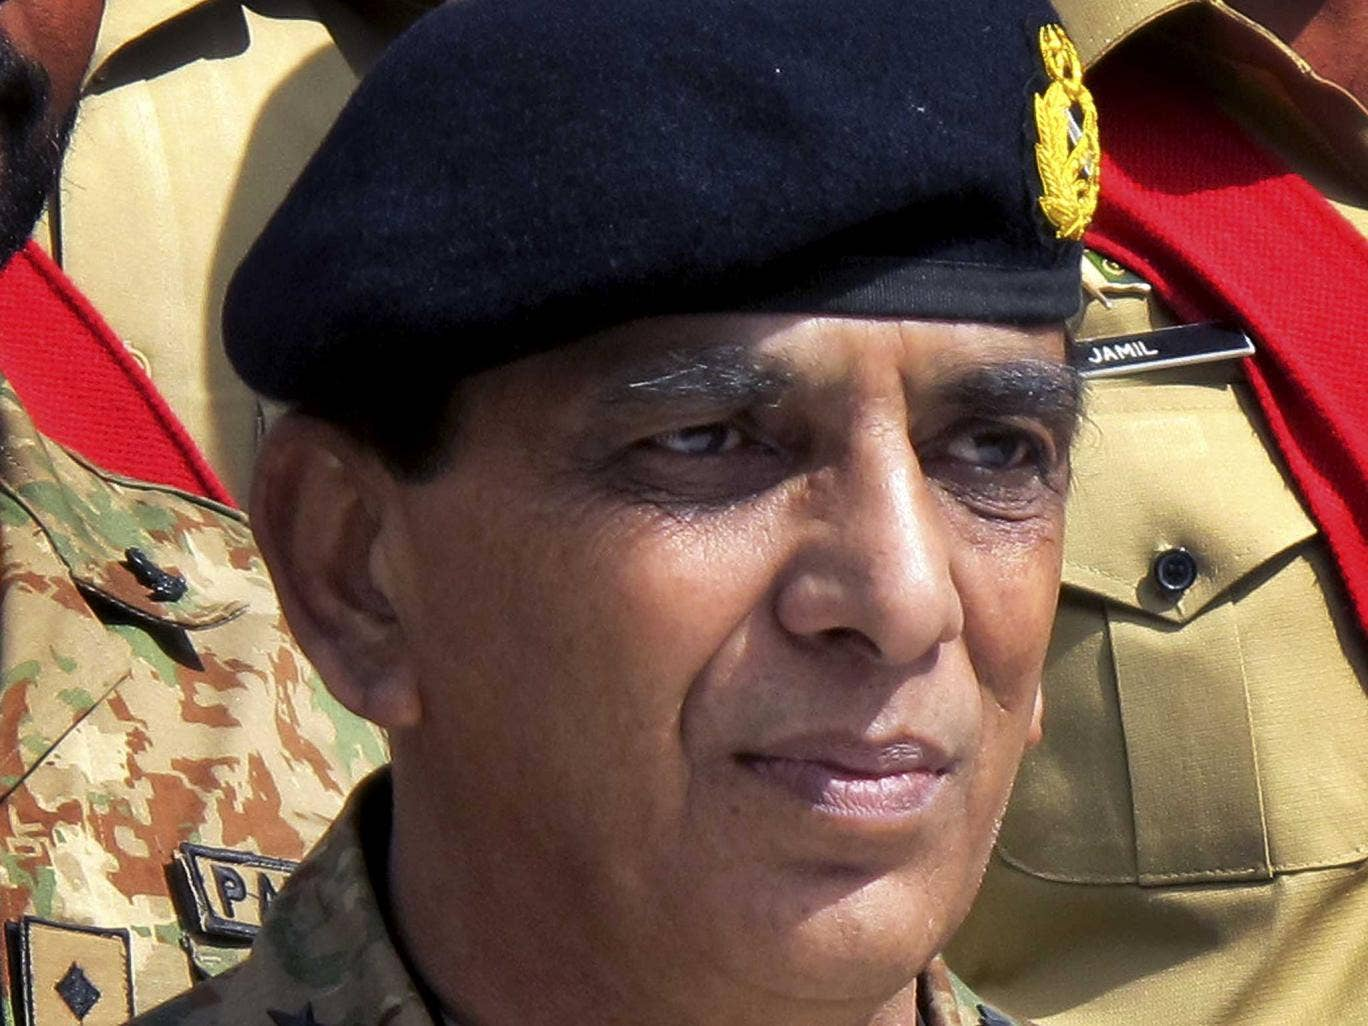 Pakistan army chief, General Ashfaq Parvez Kayani